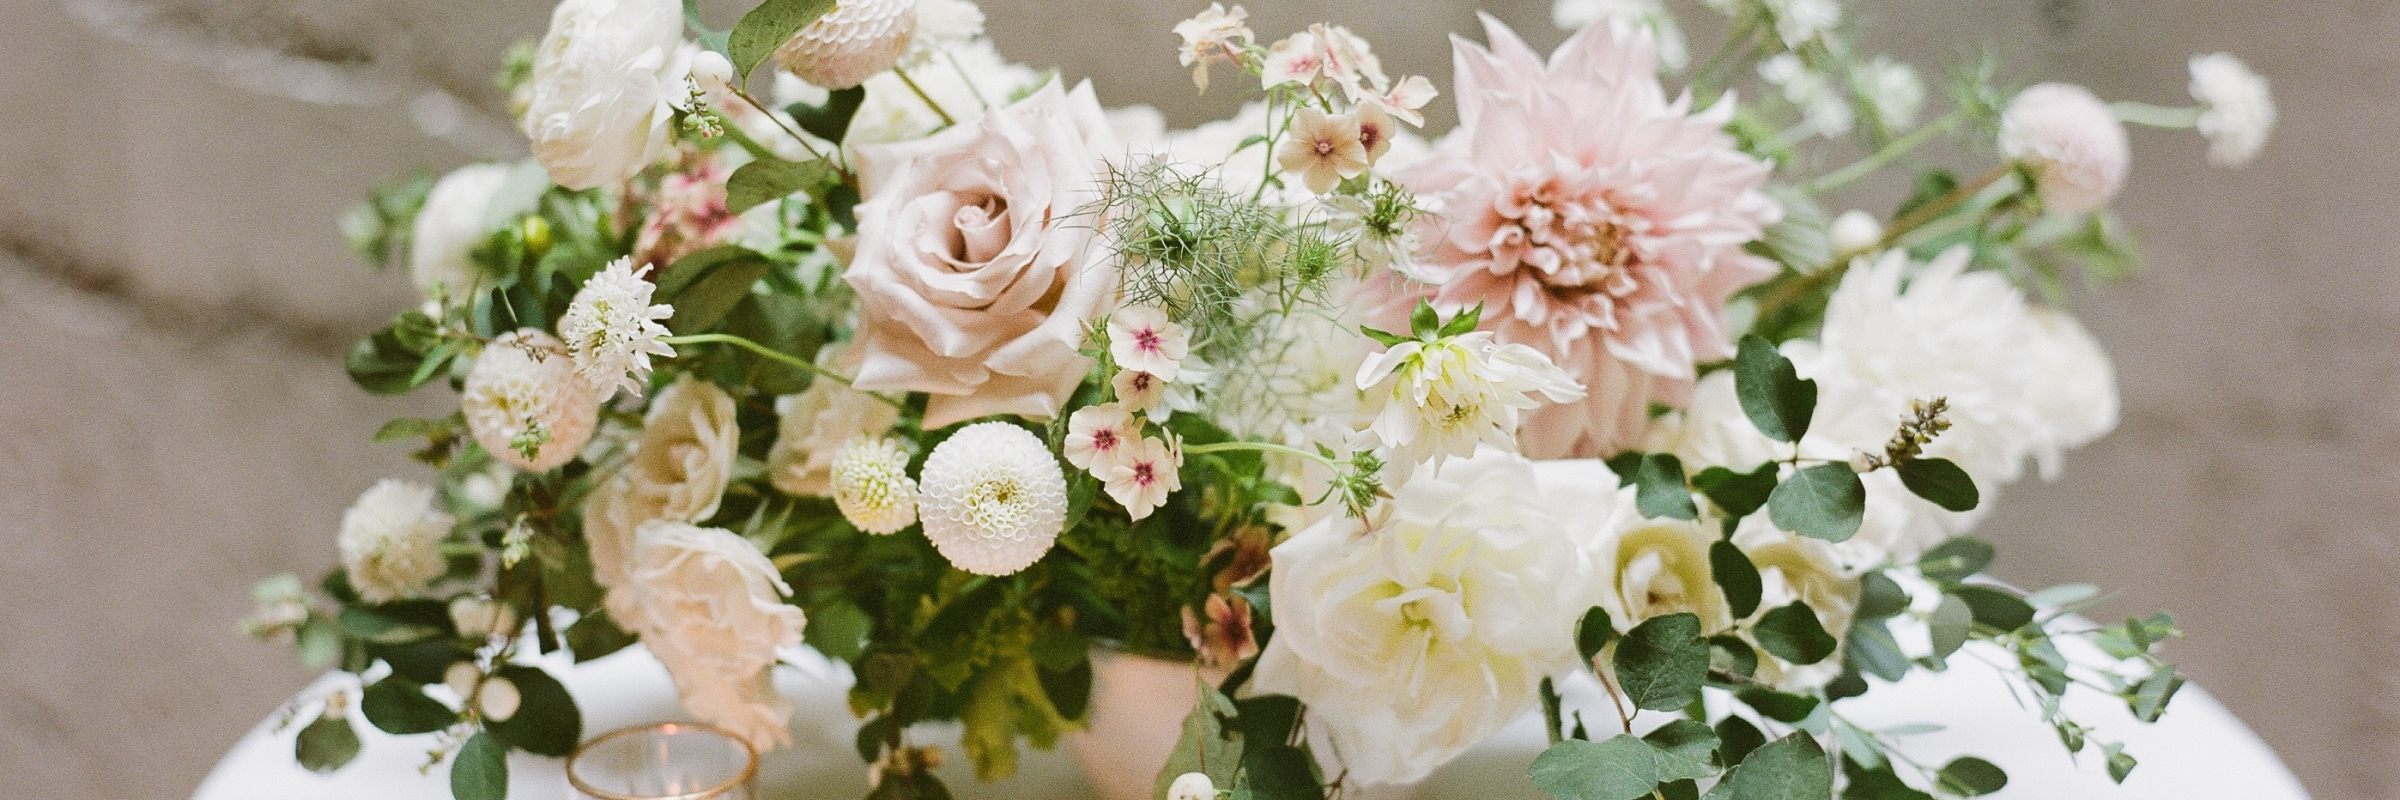 Fremont Foundry Wedding in Seattle with blush and white flowers, Photo by Katie Parra